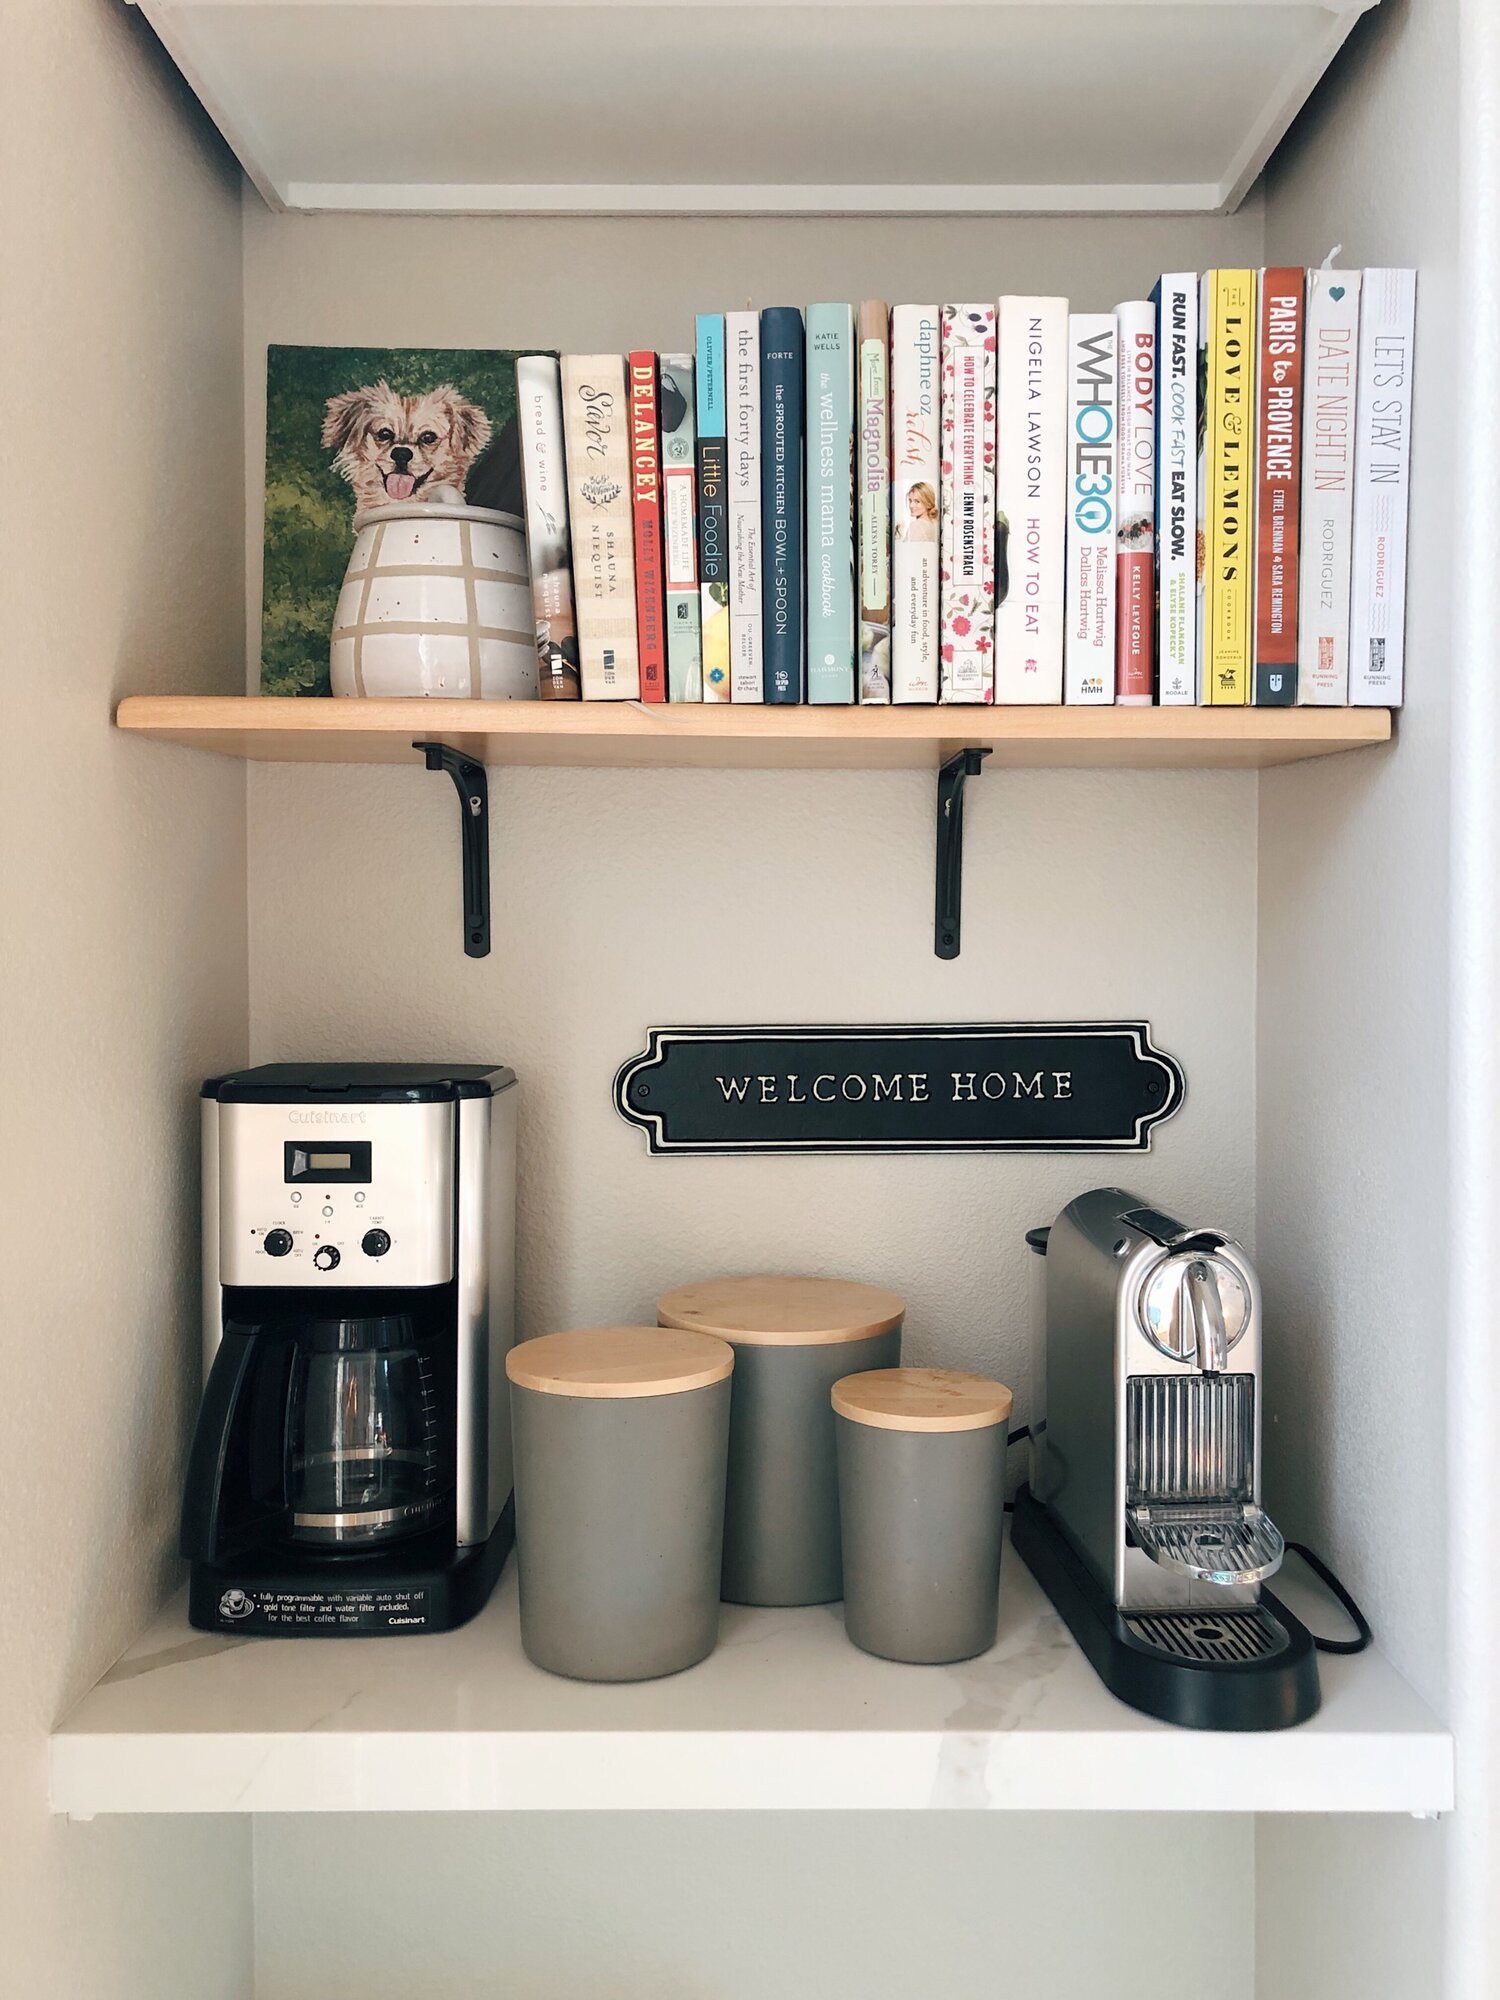 Our little coffee station that brings me so much happiness. Even my cookbooks have a home now!